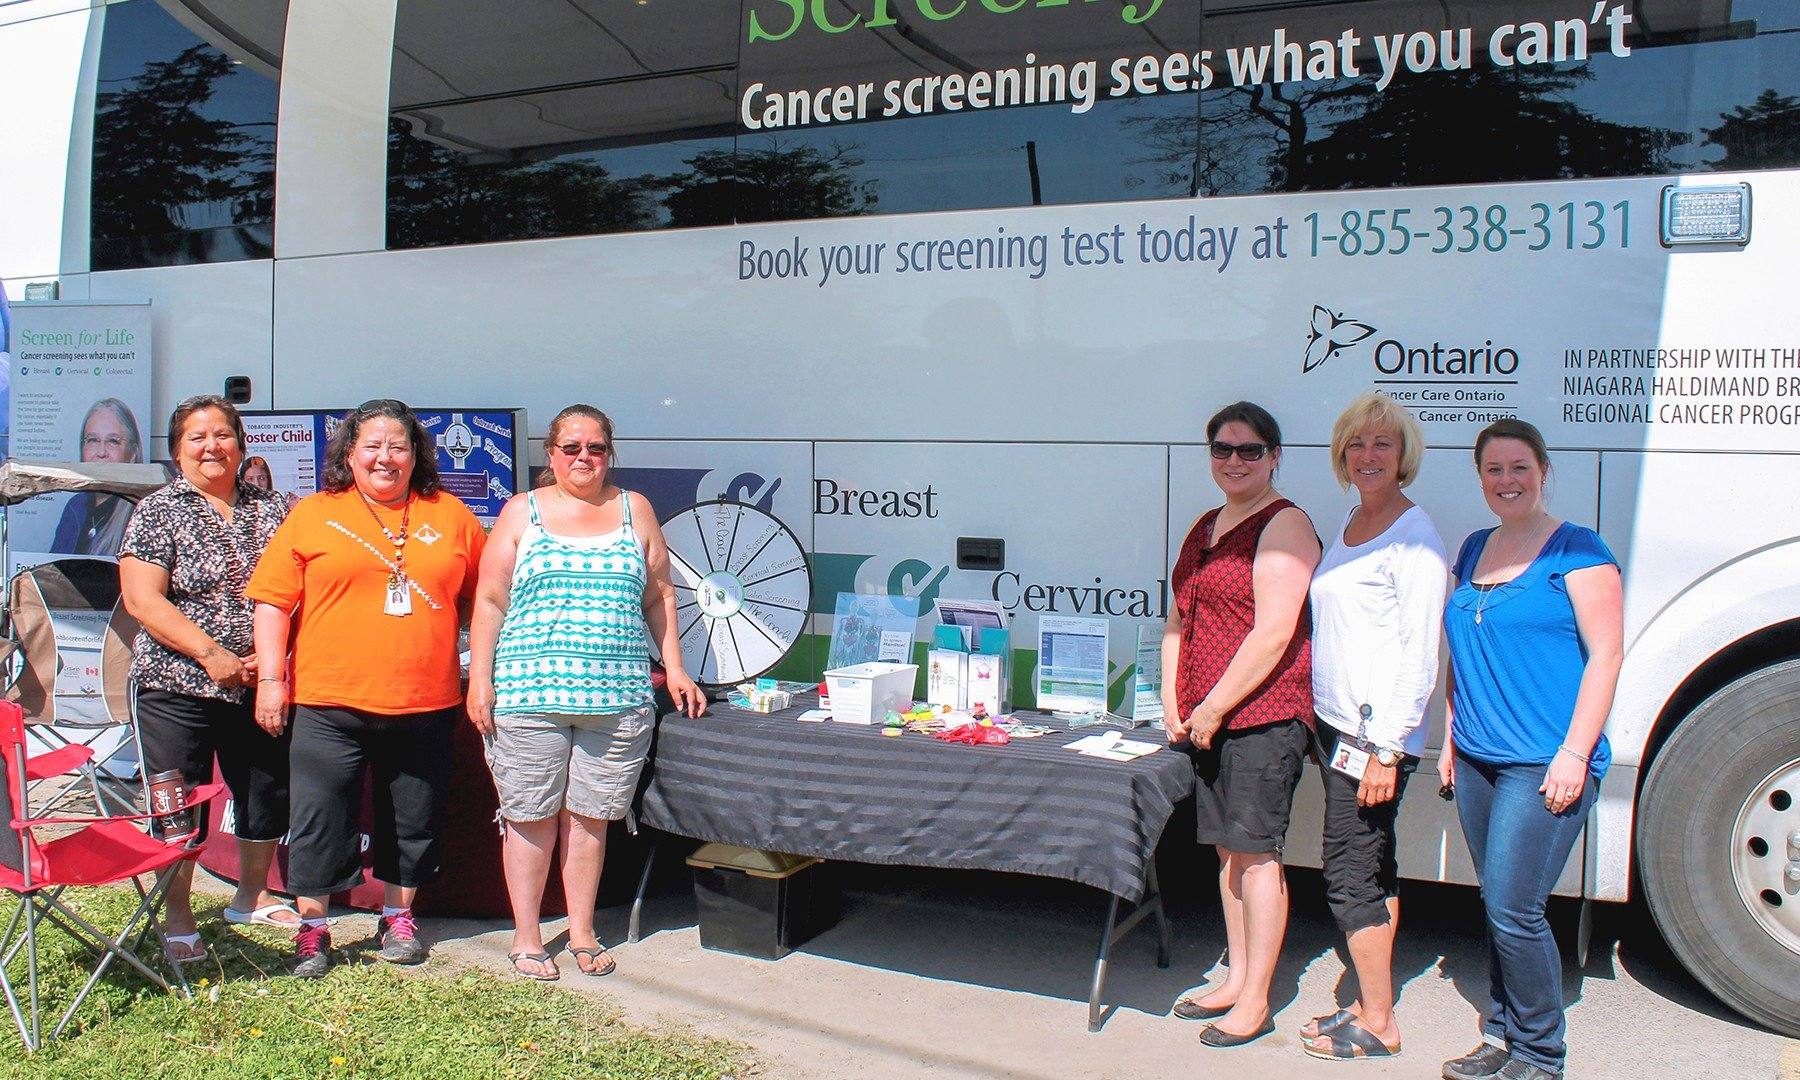 Community members, staff and volunteers of the mobile screening unit were participating in screenings last Friday, May 20. From left to right: Darlene LaForme, Deborah Martin, Tammy Hill, Lacey VanEvery (RN), Carrie Claxton (MRTM, CBI) and Alyssa Higginson.